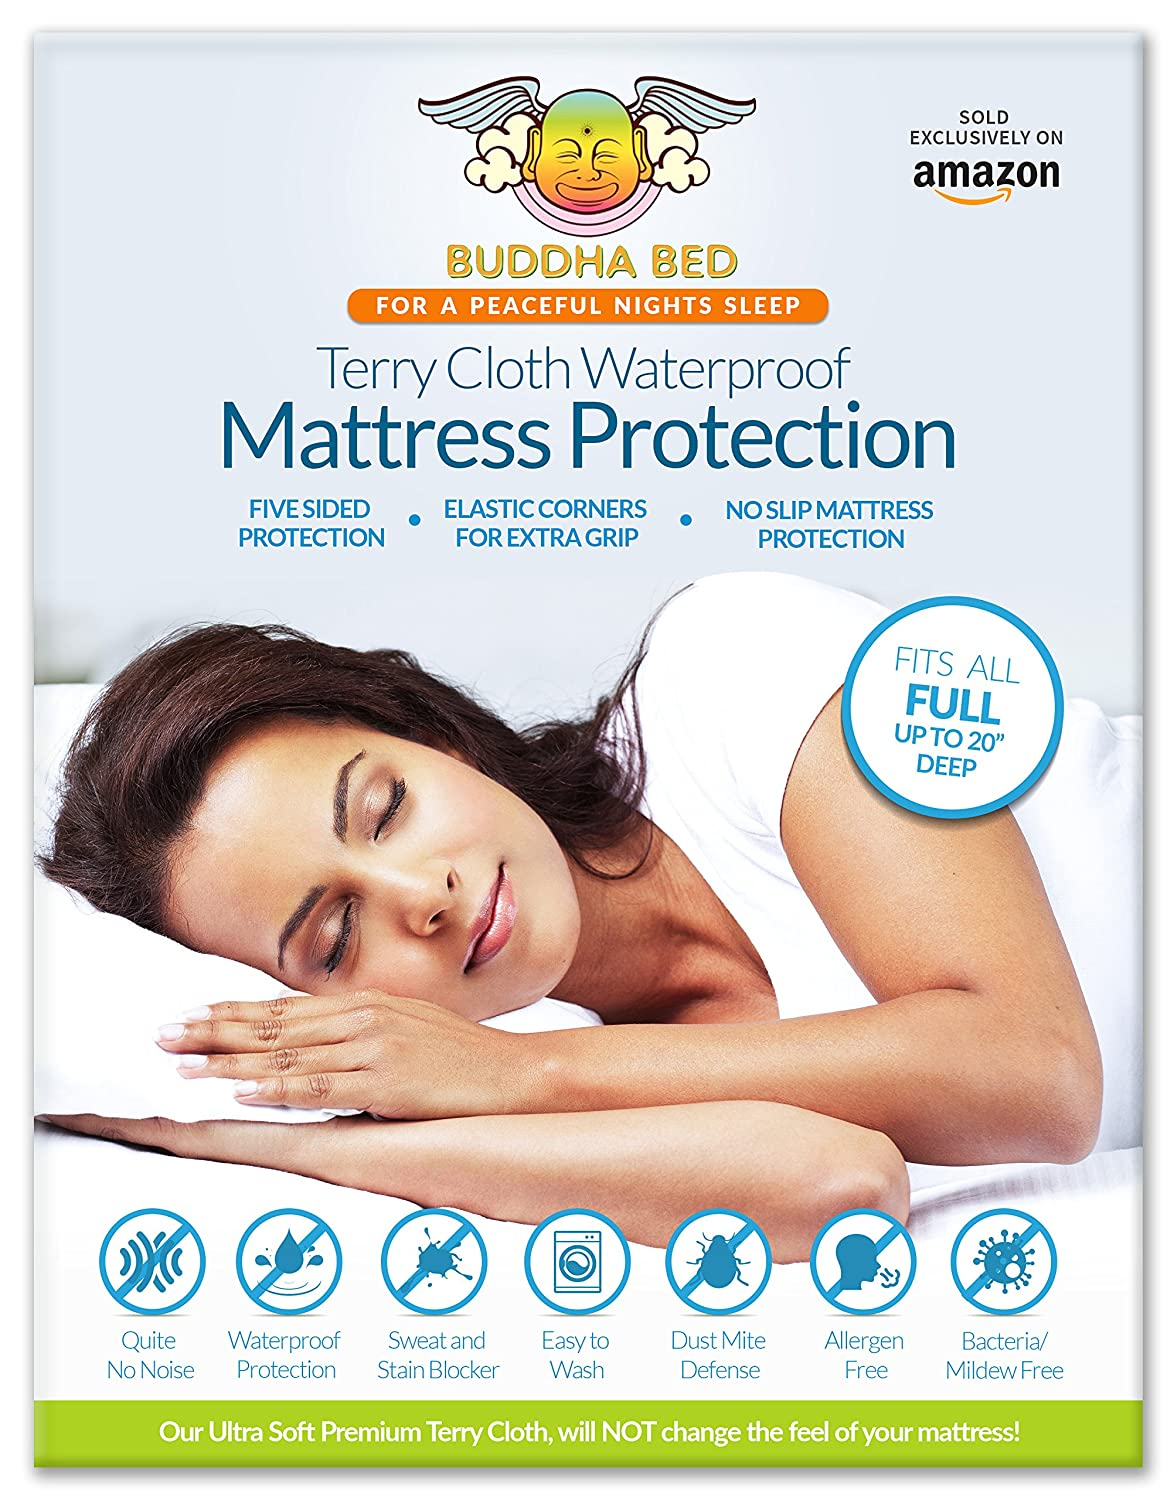 1 Full Mattress Protector Designed to Fit All Mattresses. Ultra Soft, Makes No Noise, Easy to Install and Clean. Blocks All Fluids-Sweat, Stains and Accidents. Hypoallergenic and Toxic Free Materials.